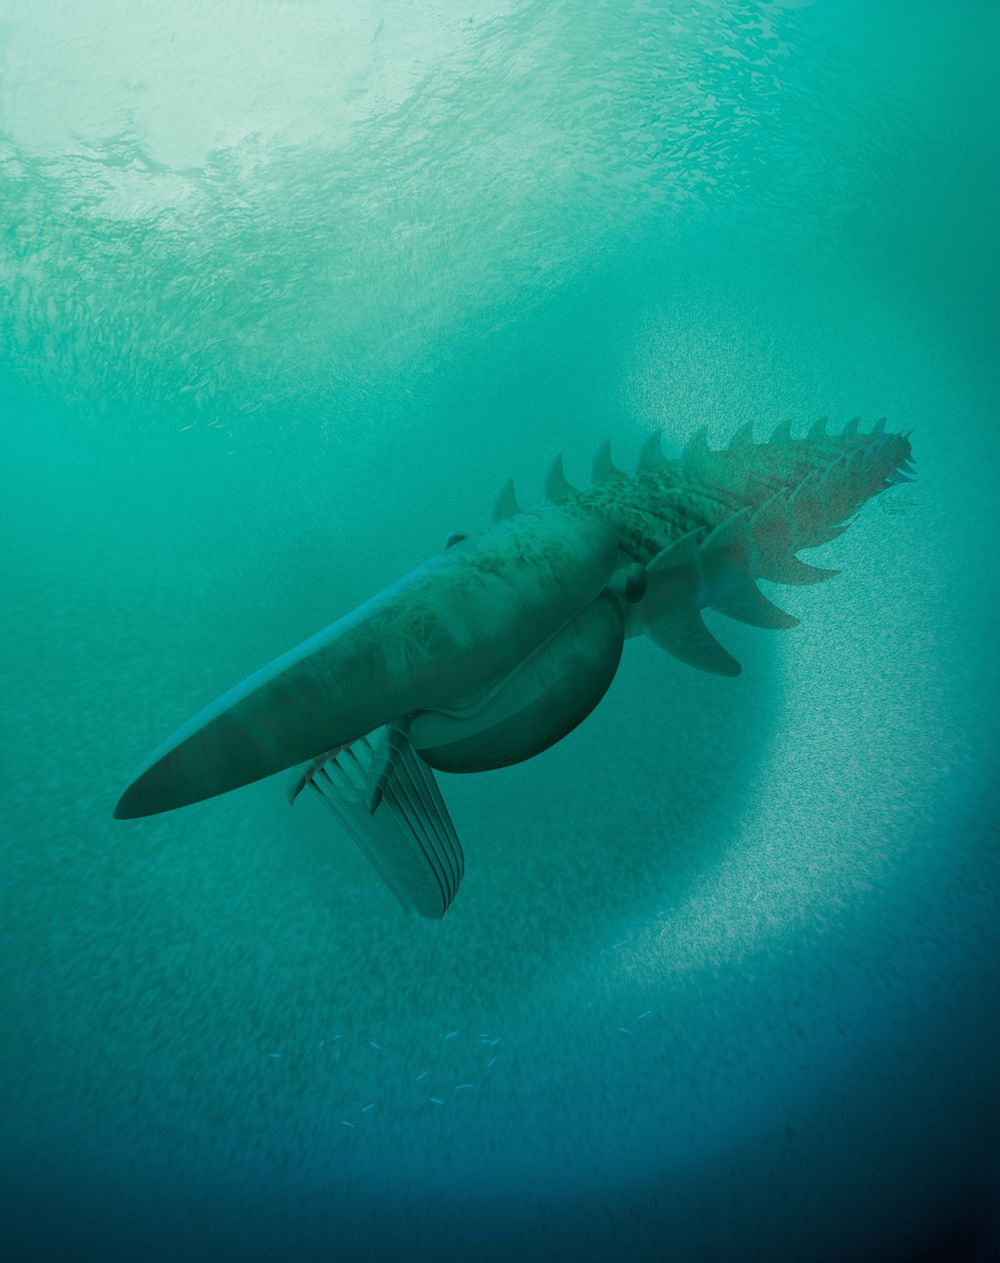 An illustration of the anomalocaridid (Aegirocassis benmoulae), a giant filter feeder that fed on plankton and lived in the Early Ordovician about 480 million years ago. The animal measured about 7 feet (2 meters) in length, and is one of the largest arthropods that ever lived.